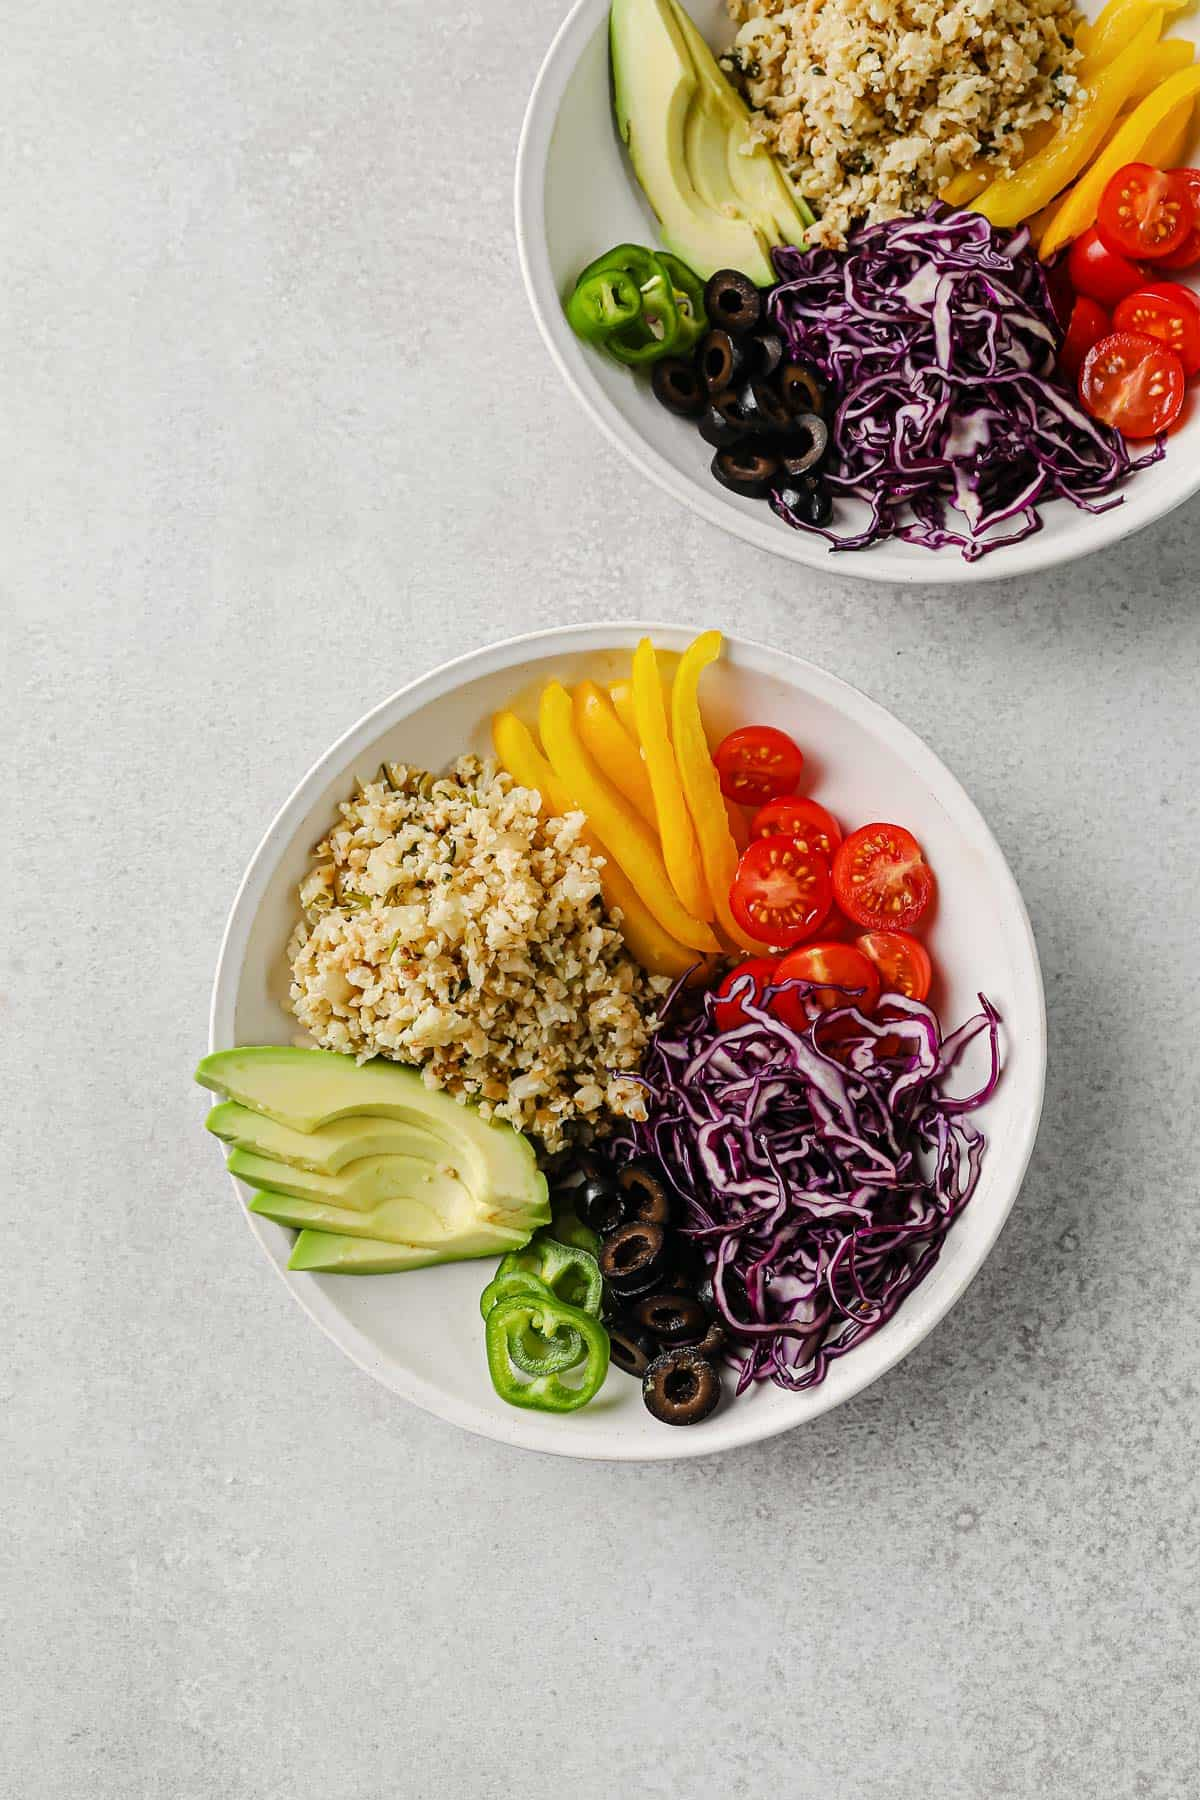 bowls piled with ingredients for fish taco bowls - cabbage, peppers, tomatoes, avocado, jalapenos, cauliflower rice